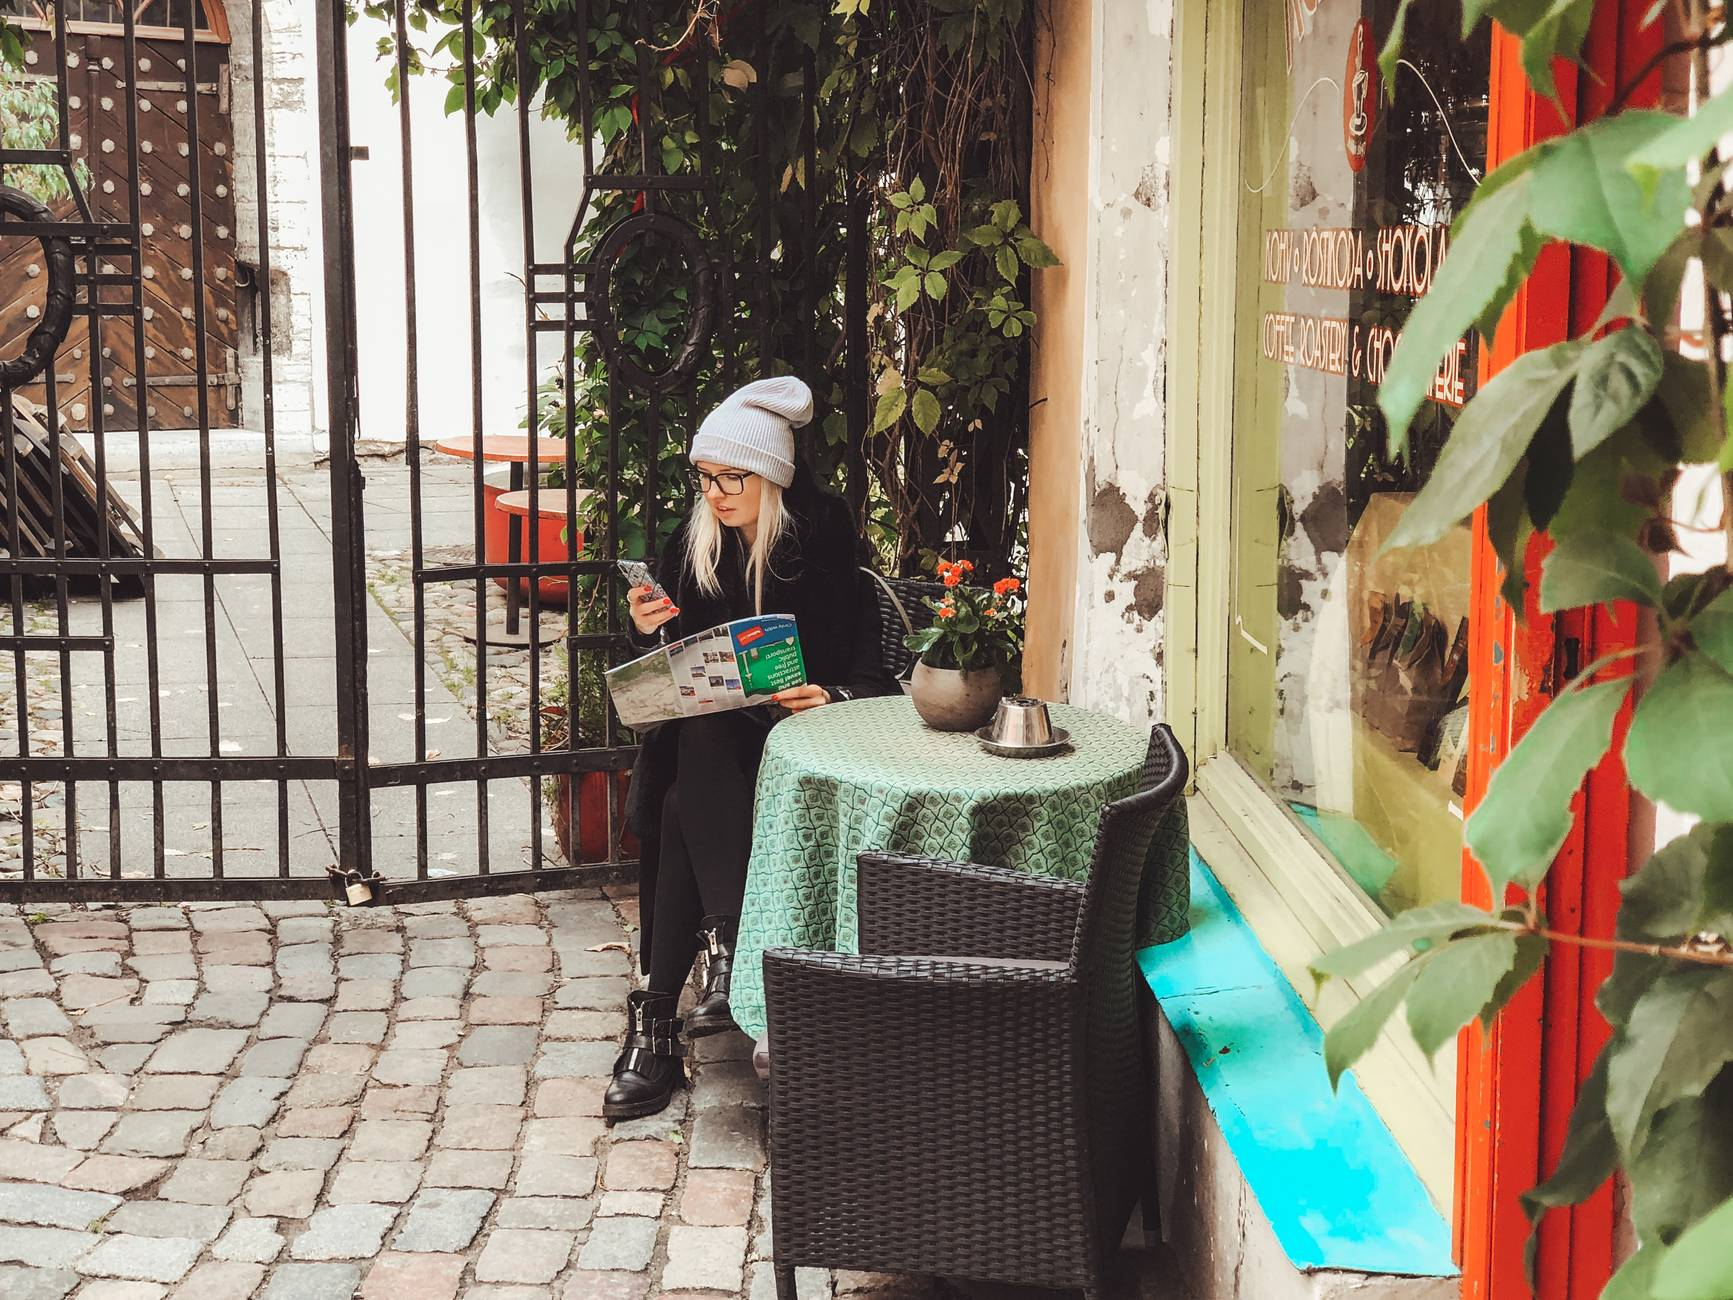 Woman at  the Old Town of Tallinn, Estonia, looking at a map of the city.